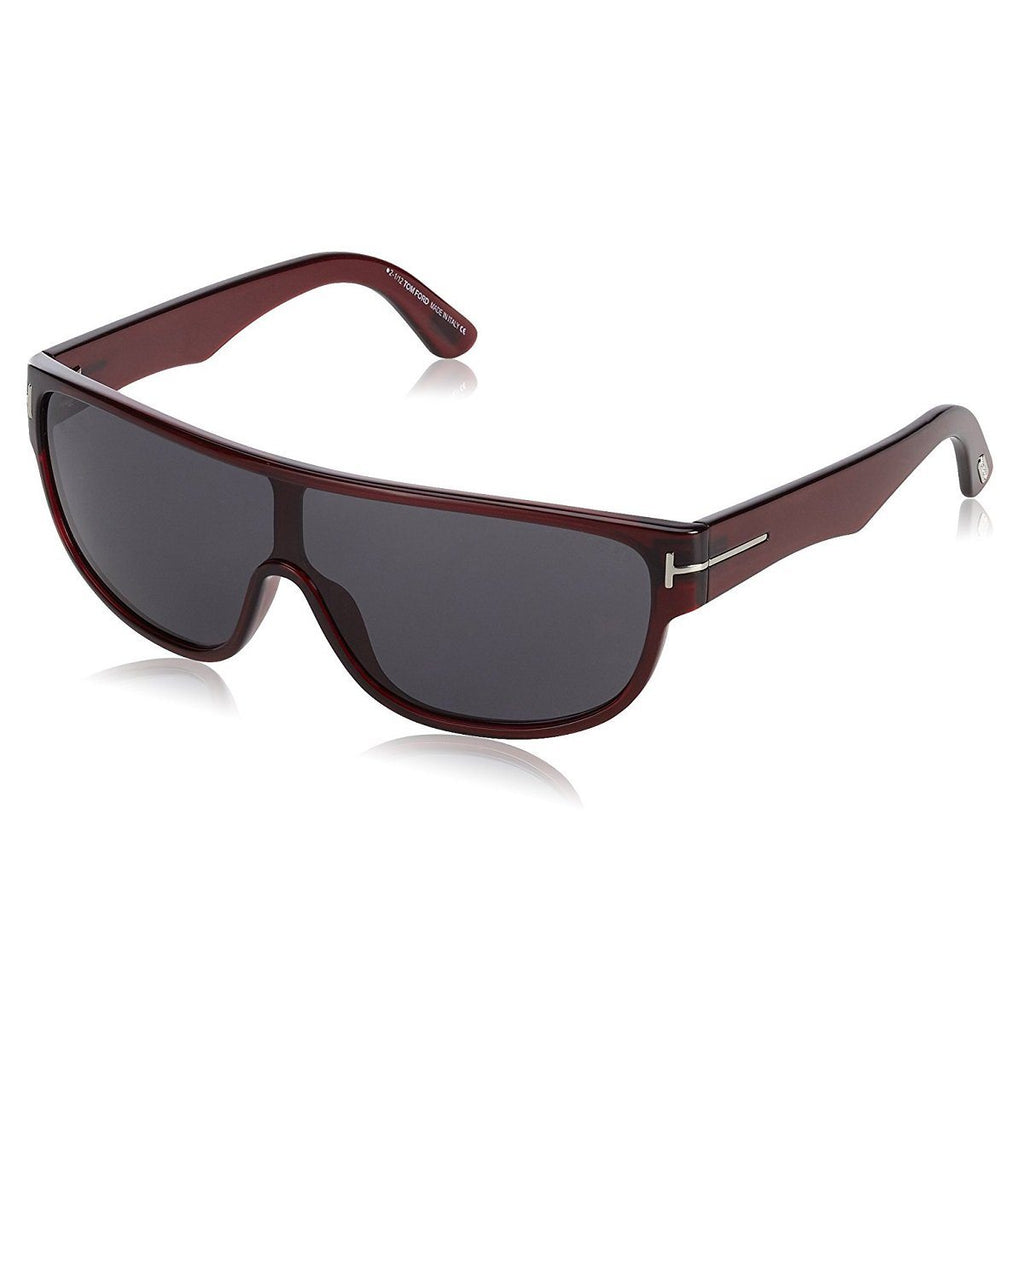 Tom Ford TF 292 69A Wagner Burgundy Sunglasses